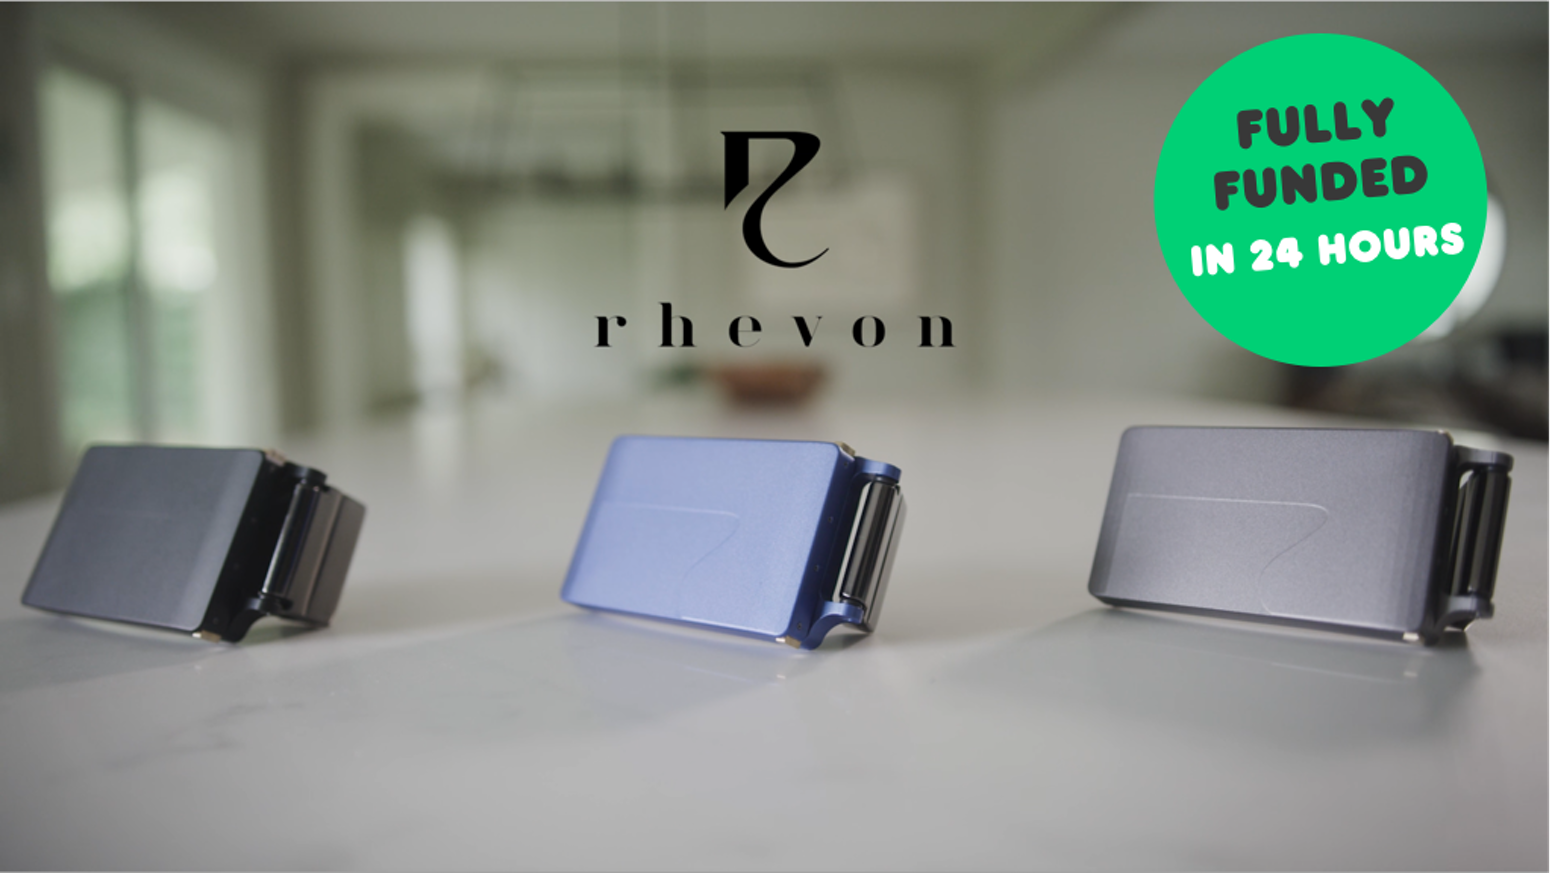 The Rhevon Flash wallet is discreet, comfortable, and always with you, without the unsightly pocket bulge.